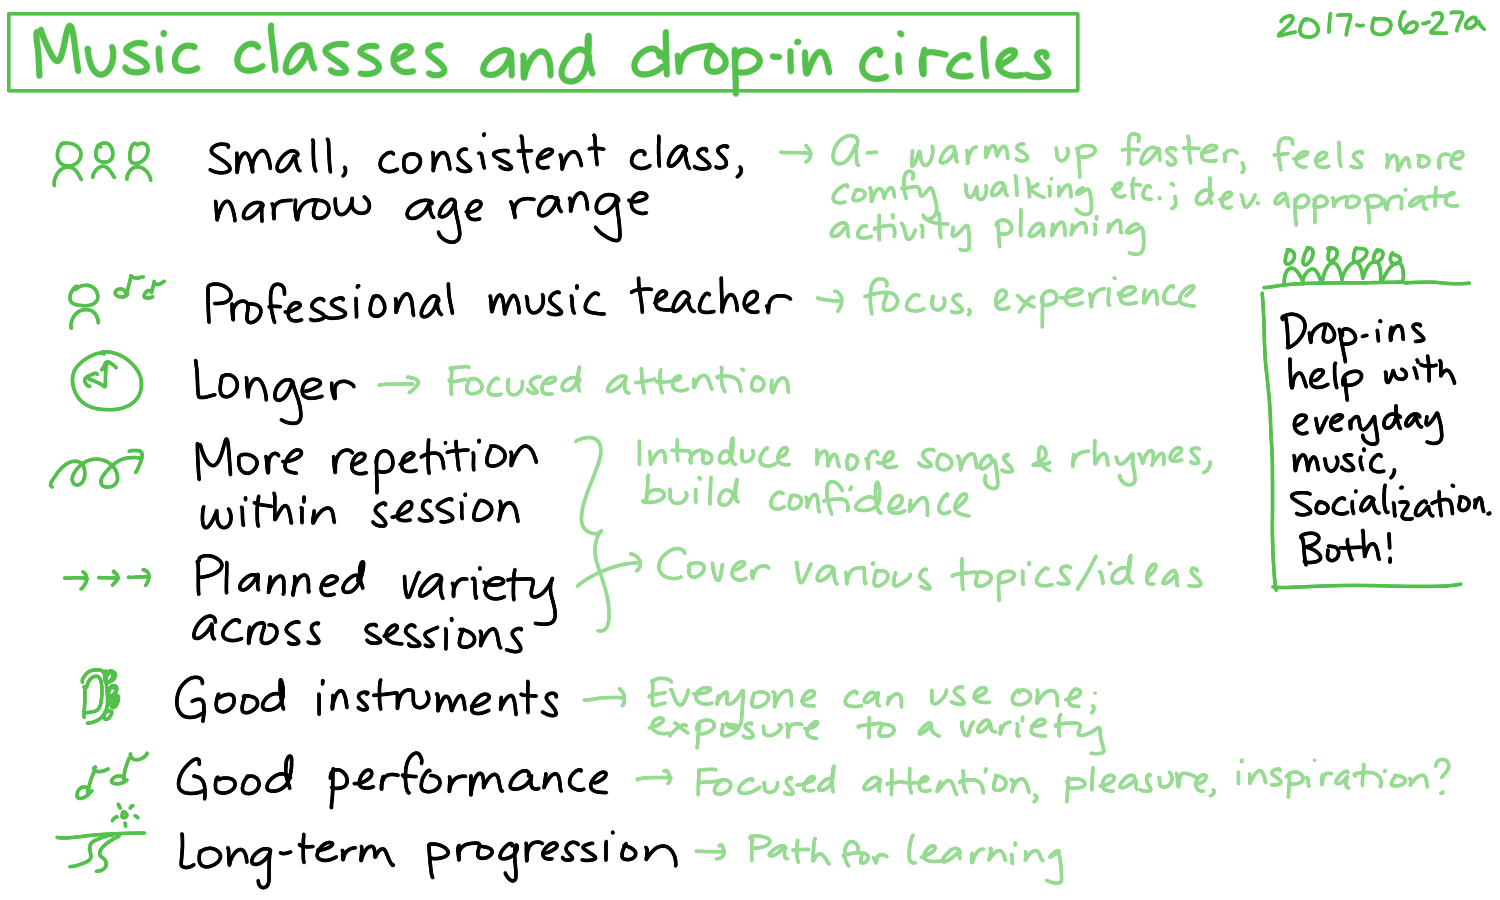 2017-06-27a Music classes and drop-in circles #music.png